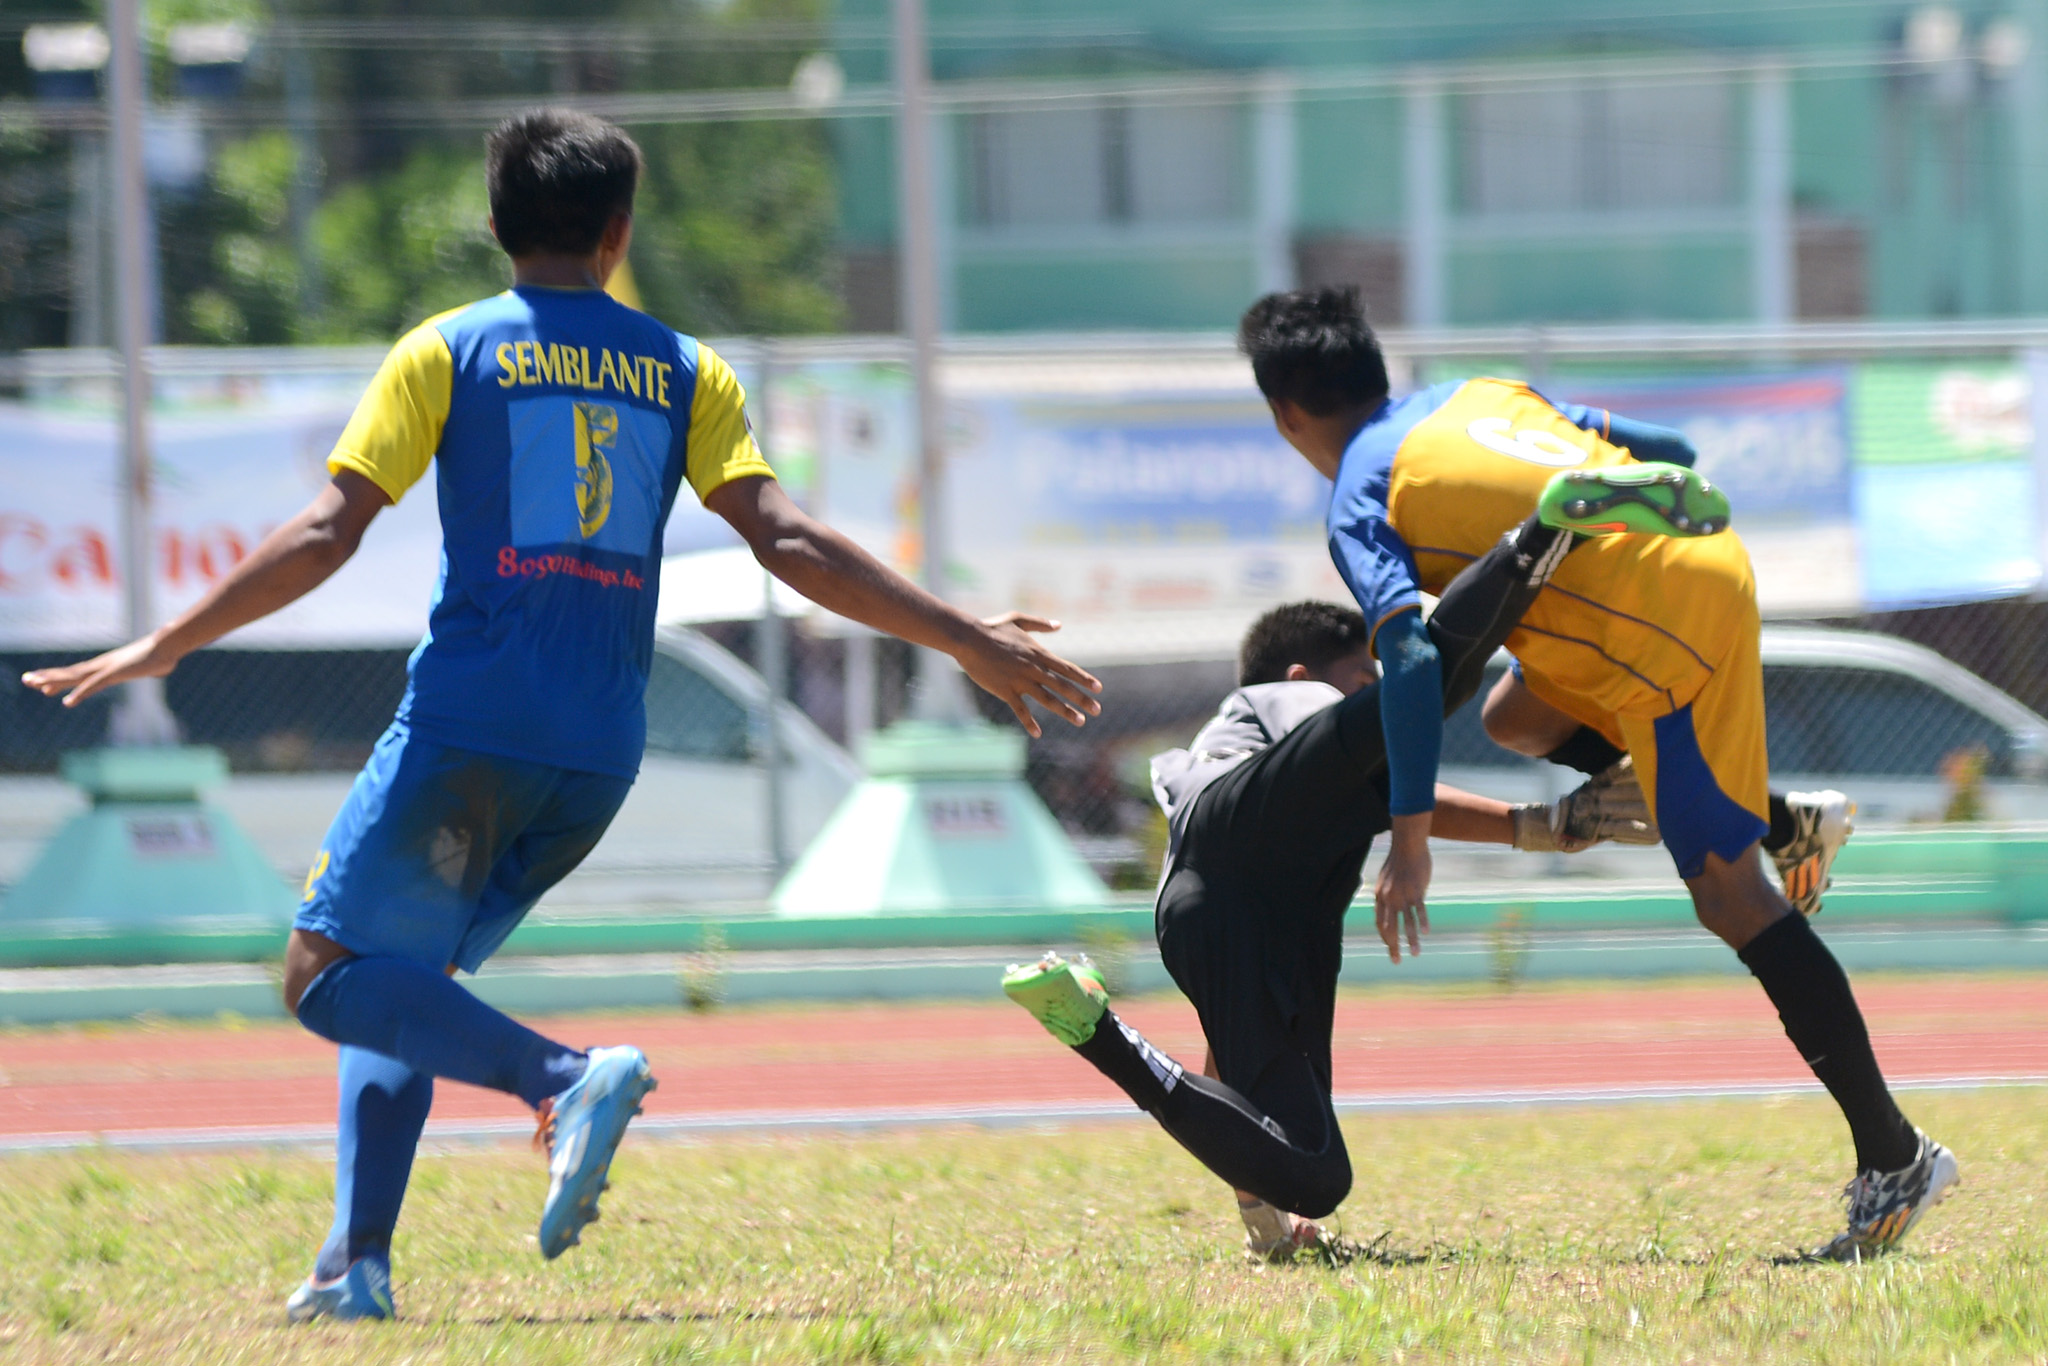 DOWN THEY GO. NCR and Central Visayas players get entangled in a play. Photo by Roy Secretario/Rappler